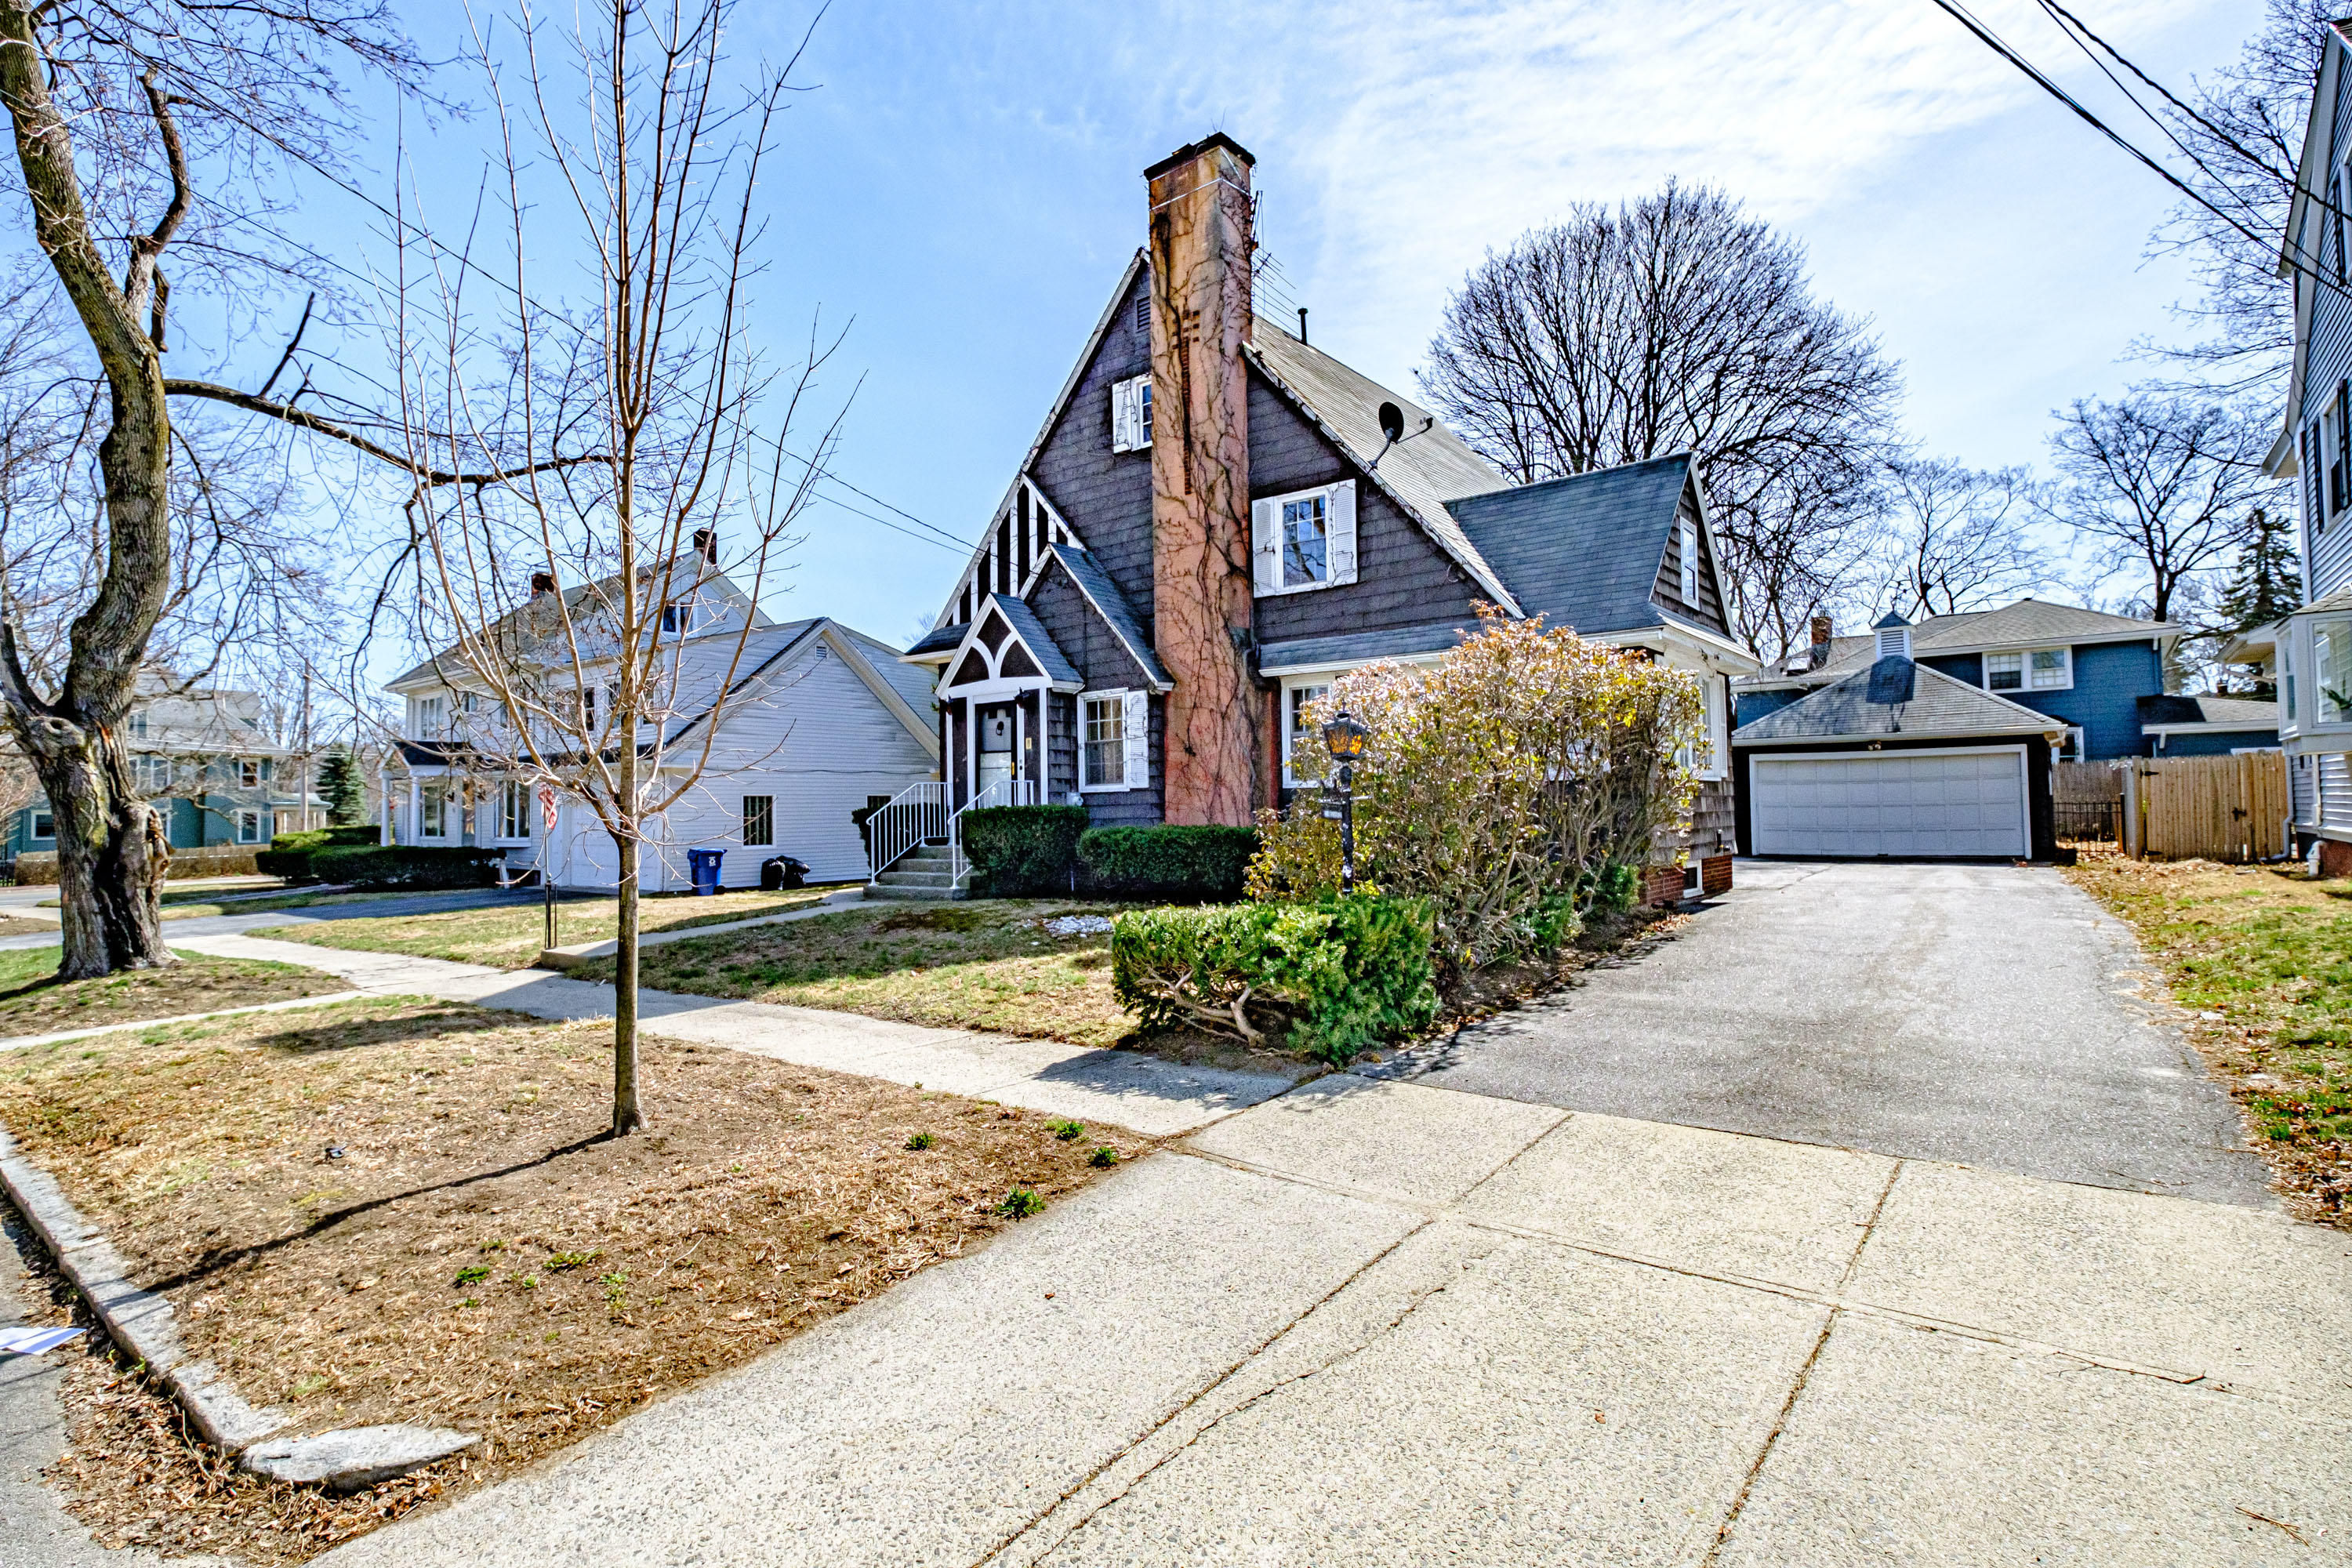 Main image for MLS listing 1487690